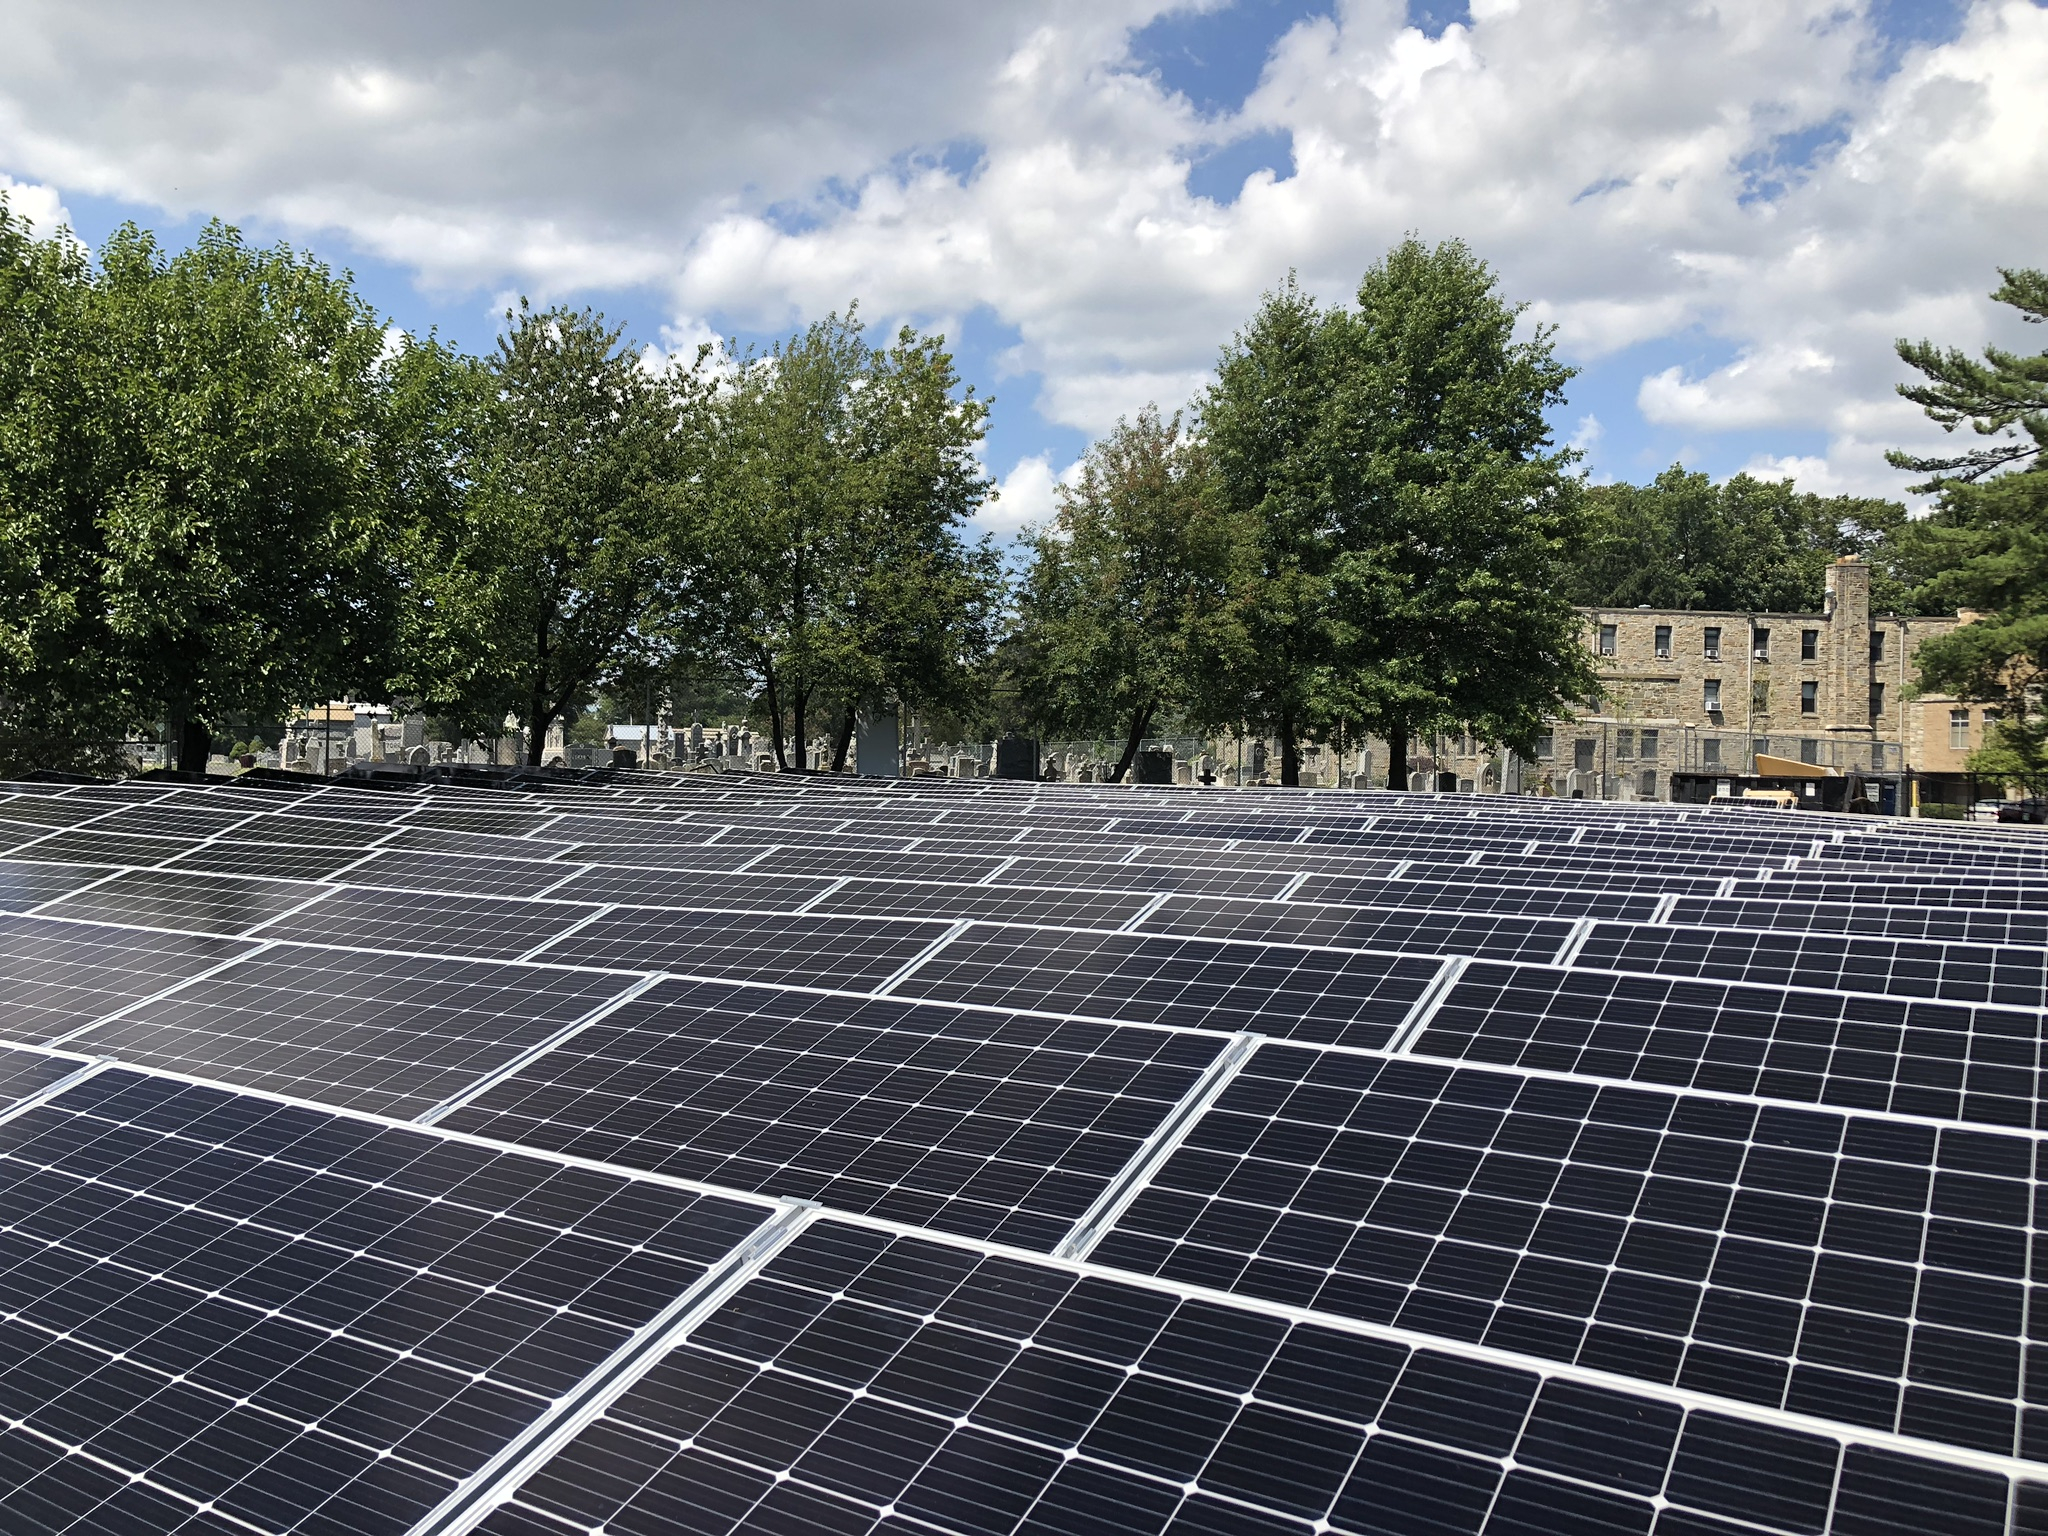 Community Solar Brings Renewable Power to All